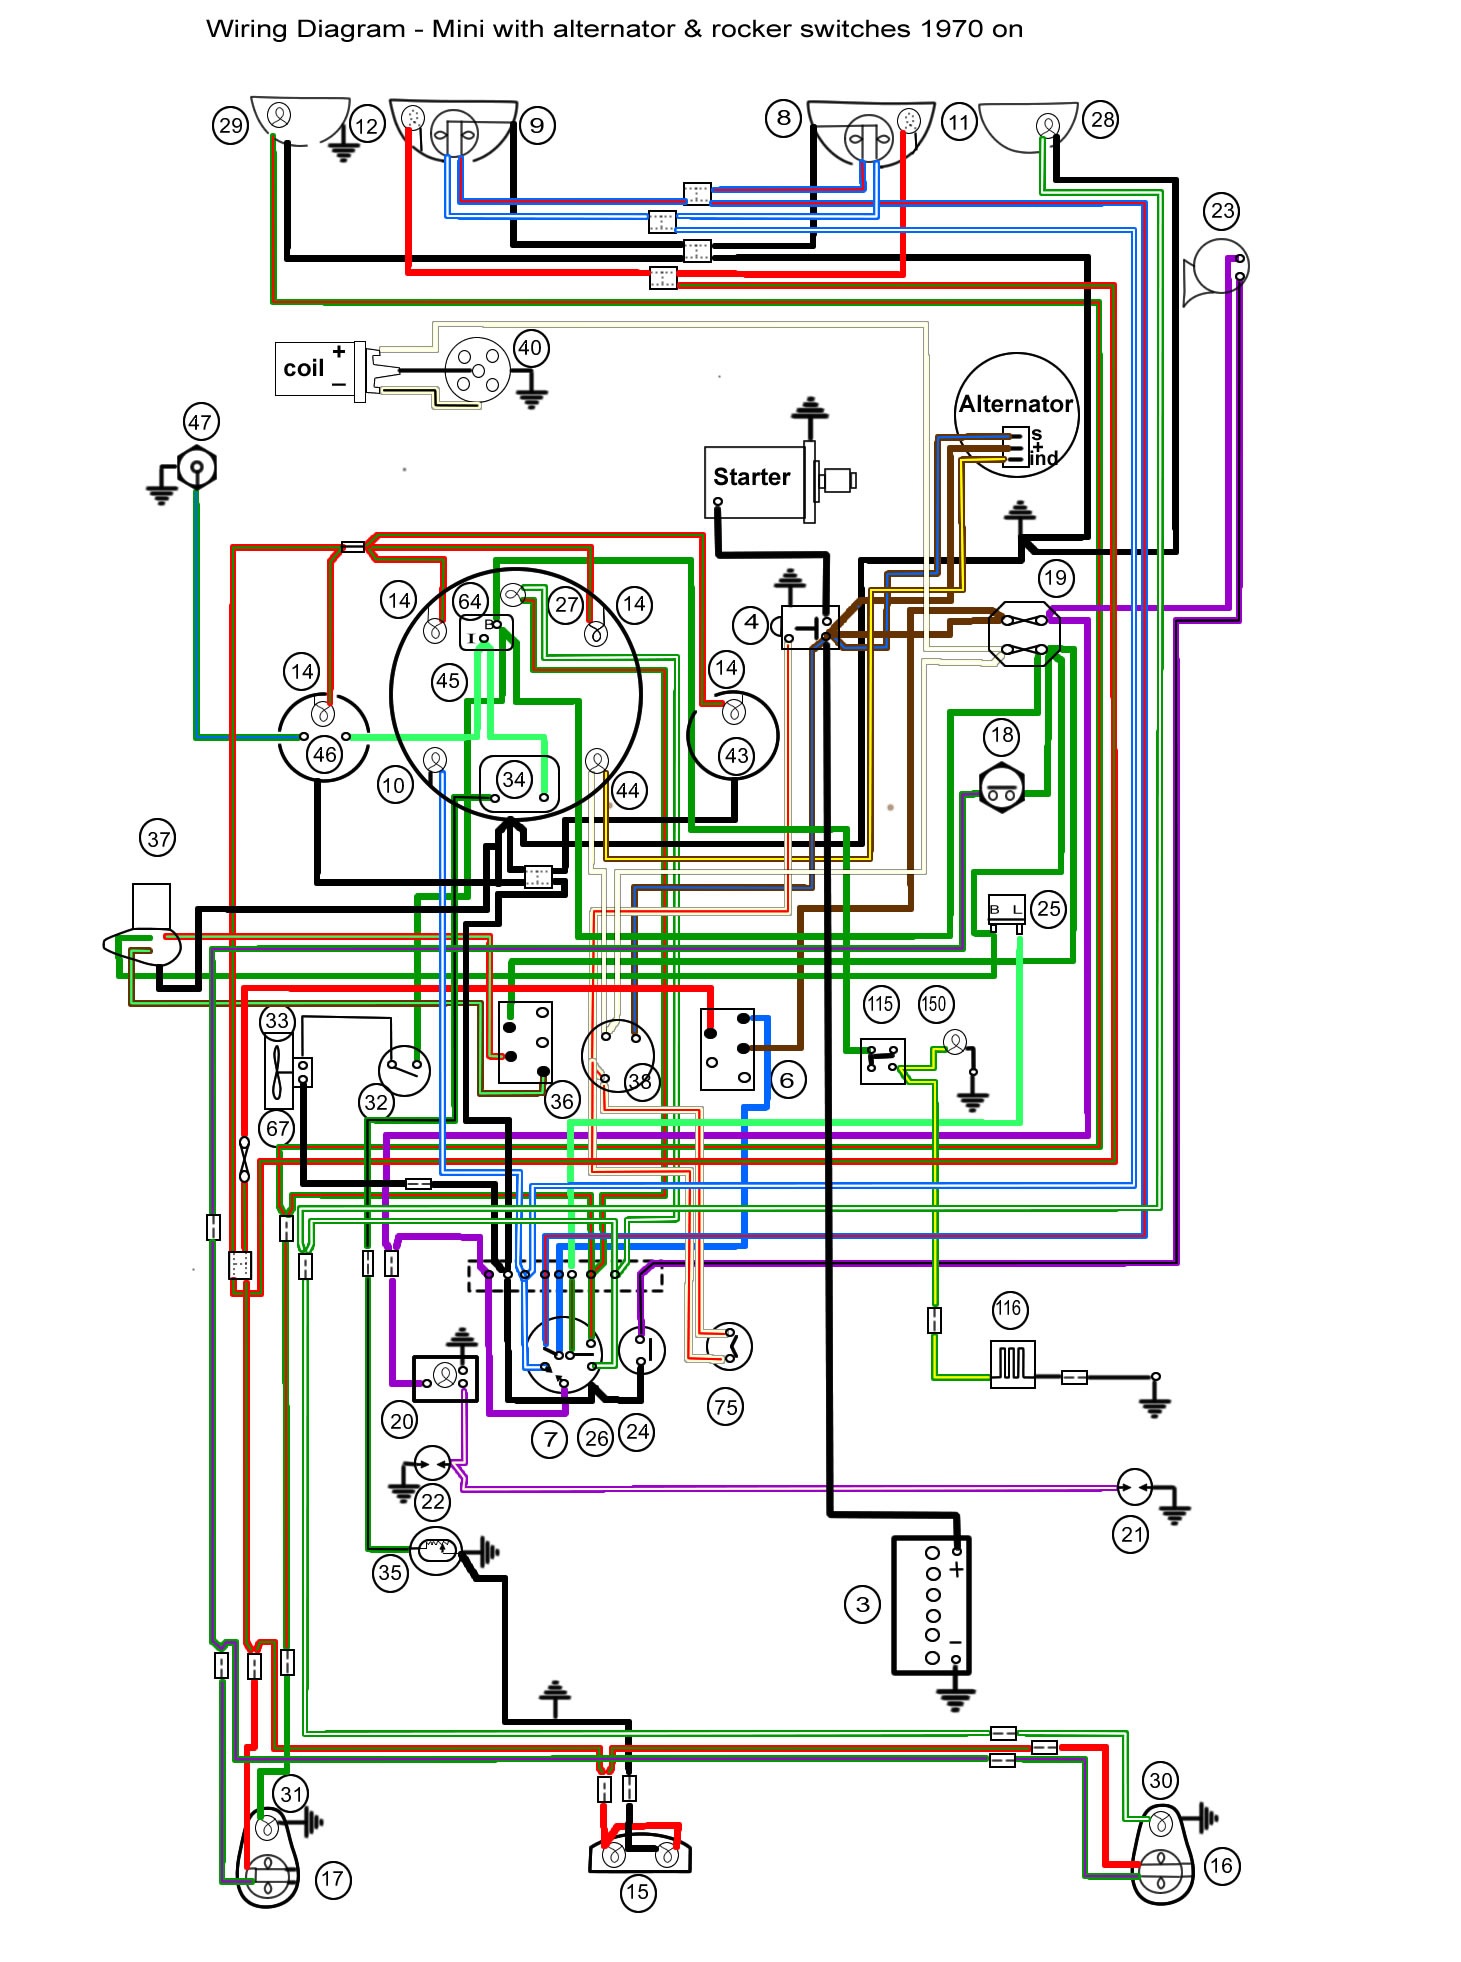 Repairing Car Wiring Loom Not Lossing Diagram Replacing Minifinity The Classic Mini Forum And Resource U2022 View Automotive Wire Replace